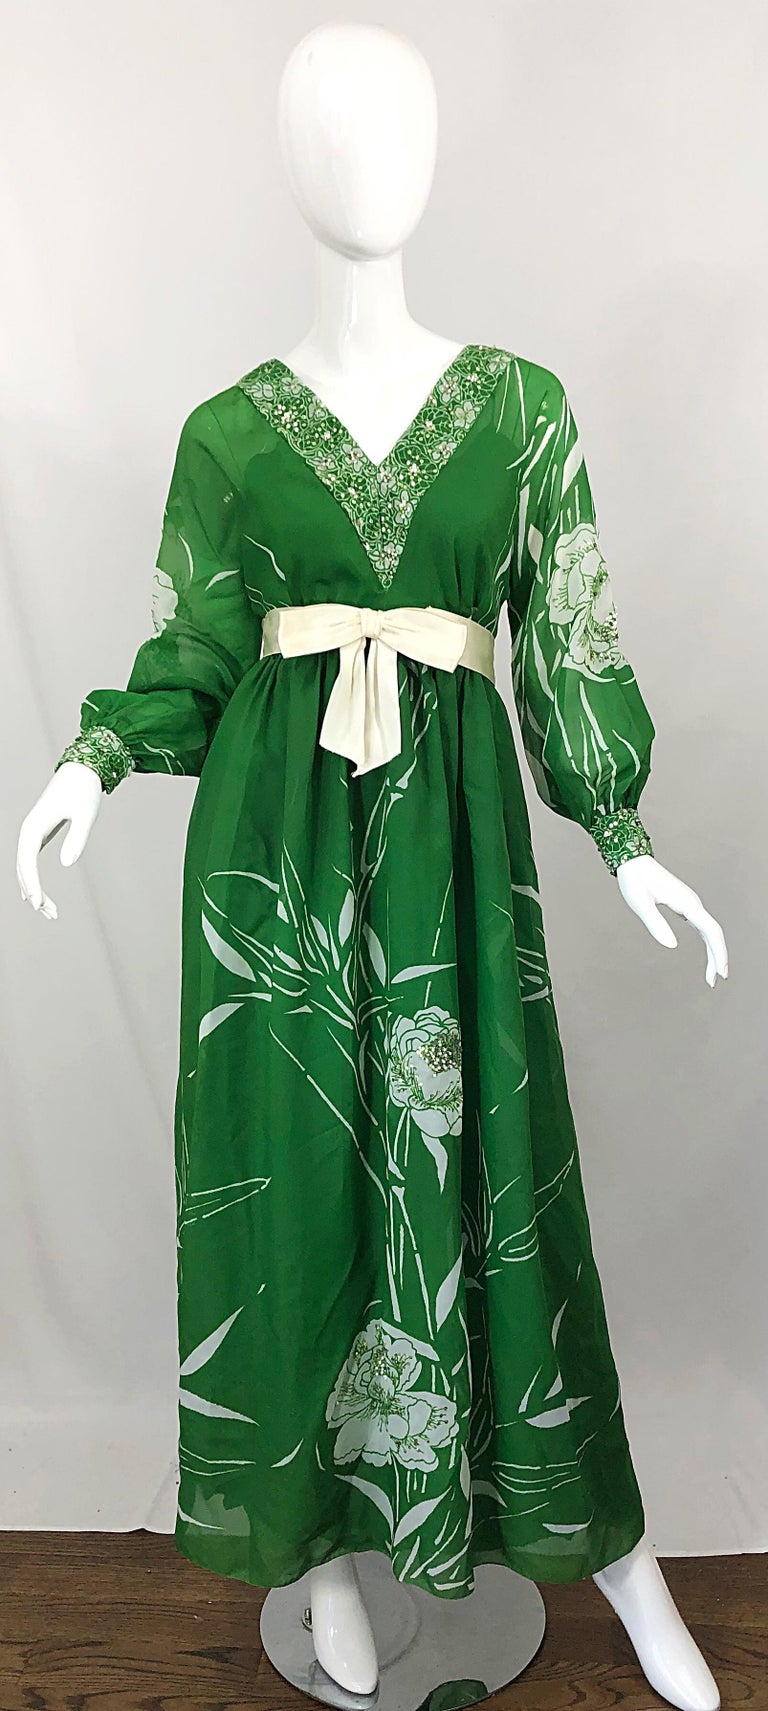 Beautiful early 1970s VICTORIA ROYAL kelly green and white abstract floral sequined gown / maxi dress! Printed throughout the dress, sleeves, trim and cuffs. Hundreds of hand-sewn light green mini sequins and white beads alloverAttached green crepe